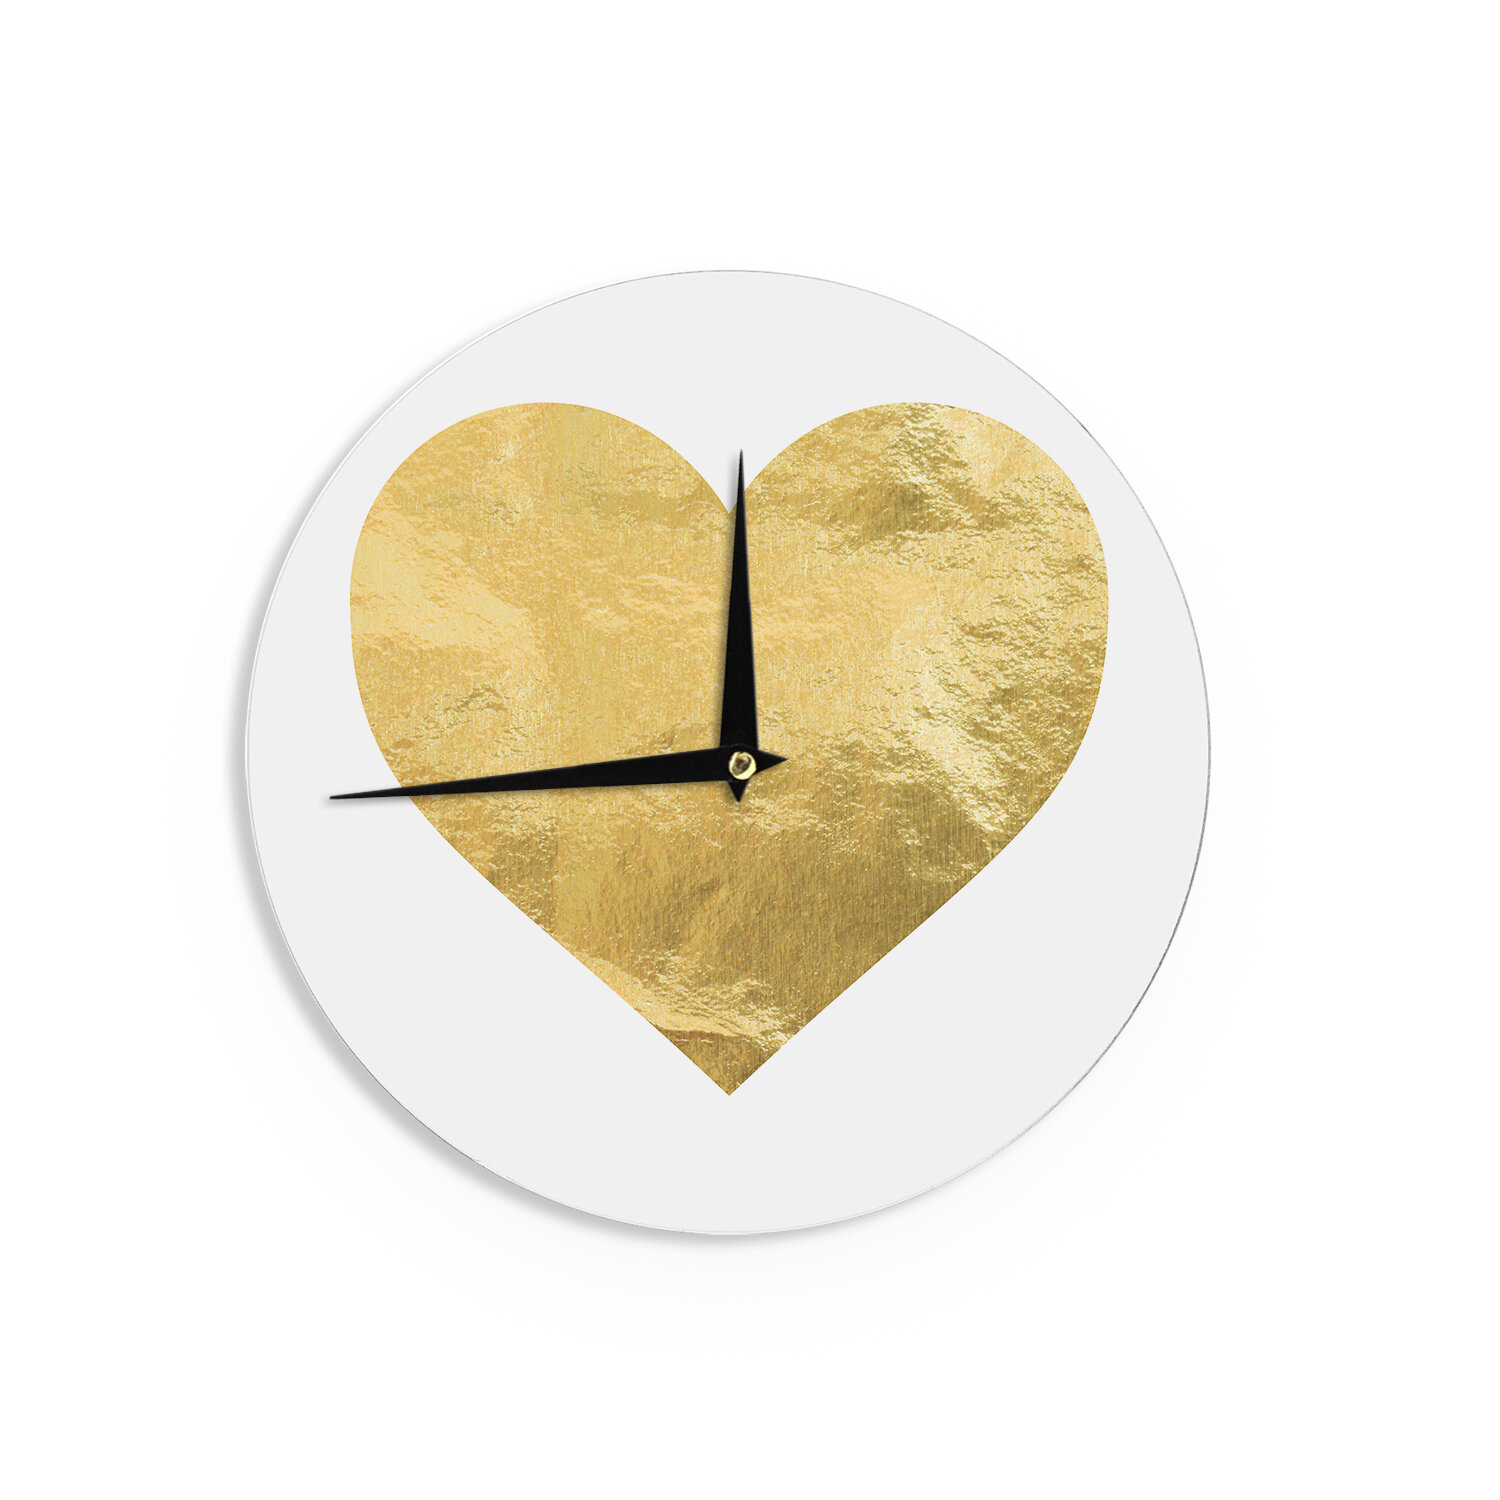 East Urban Home Heart Of Gold 12 Wall Clock Wayfair